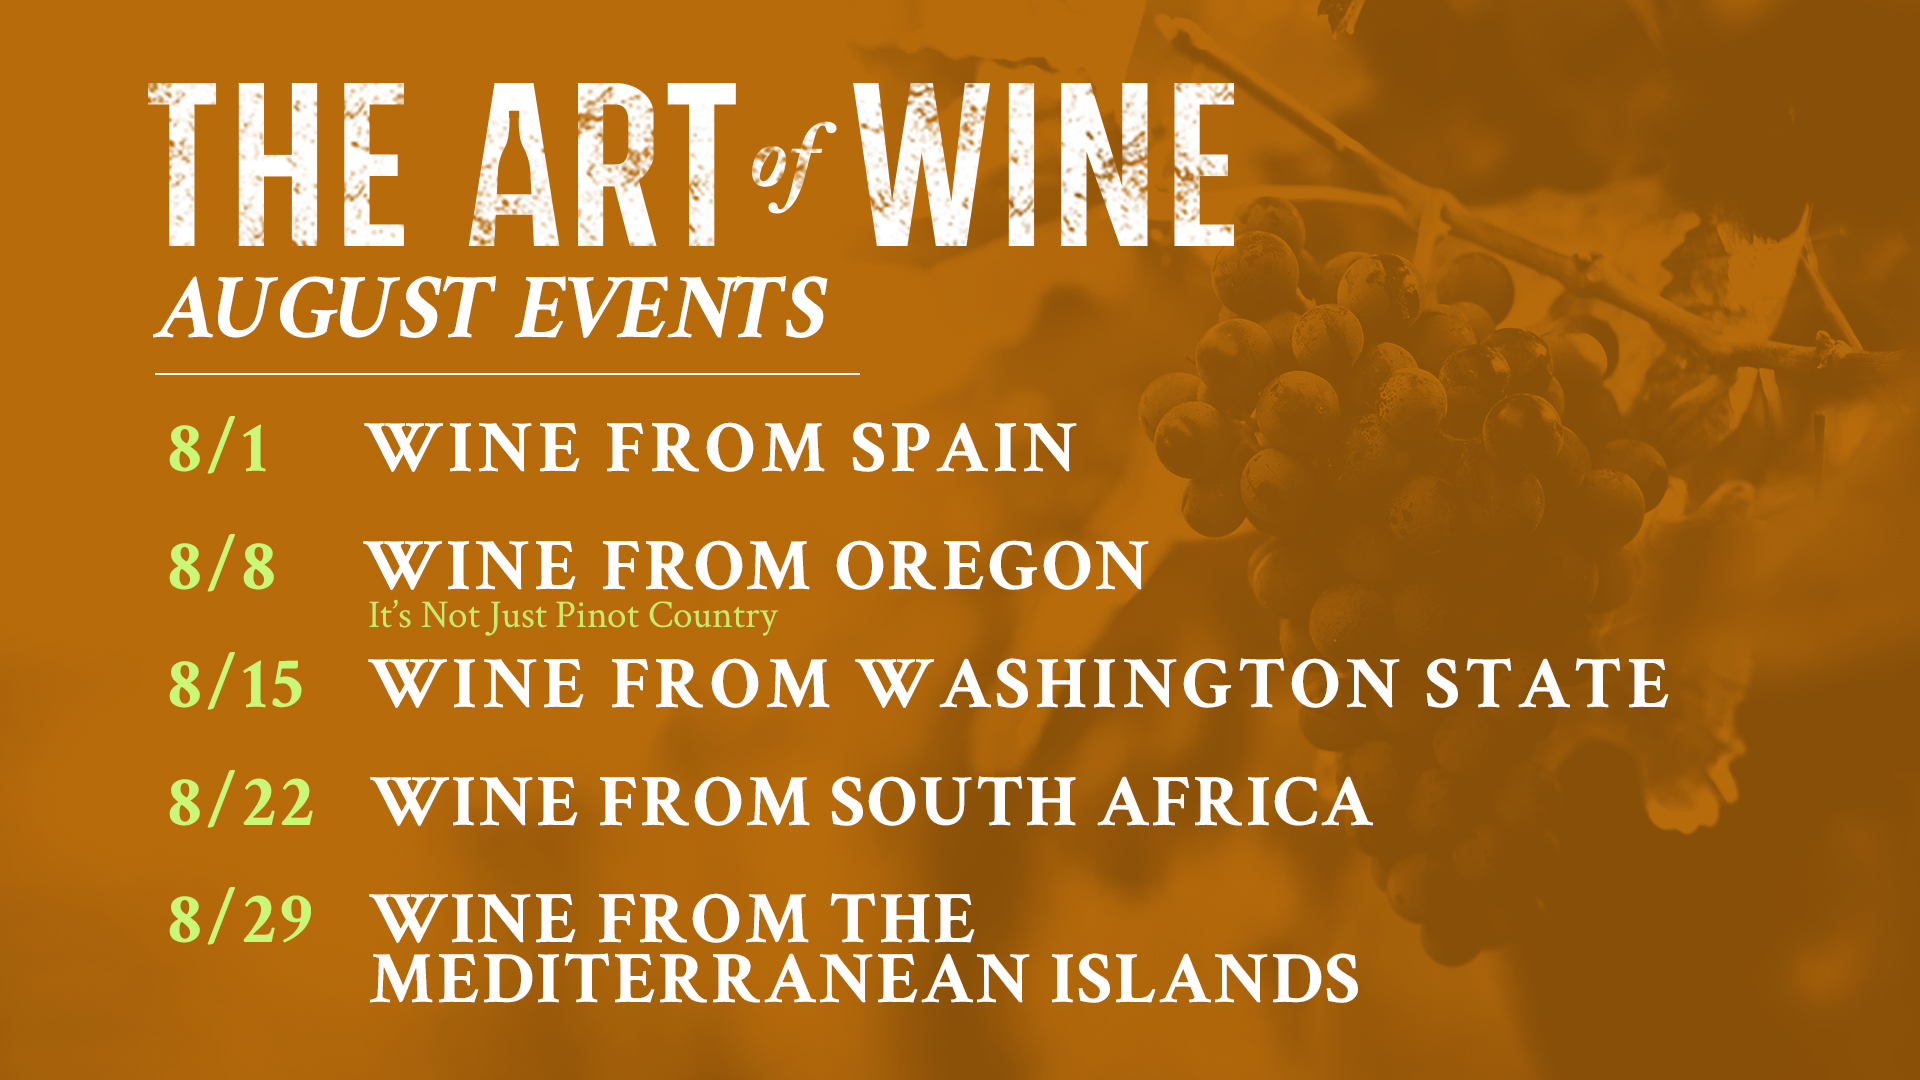 The Art of Wine August Events